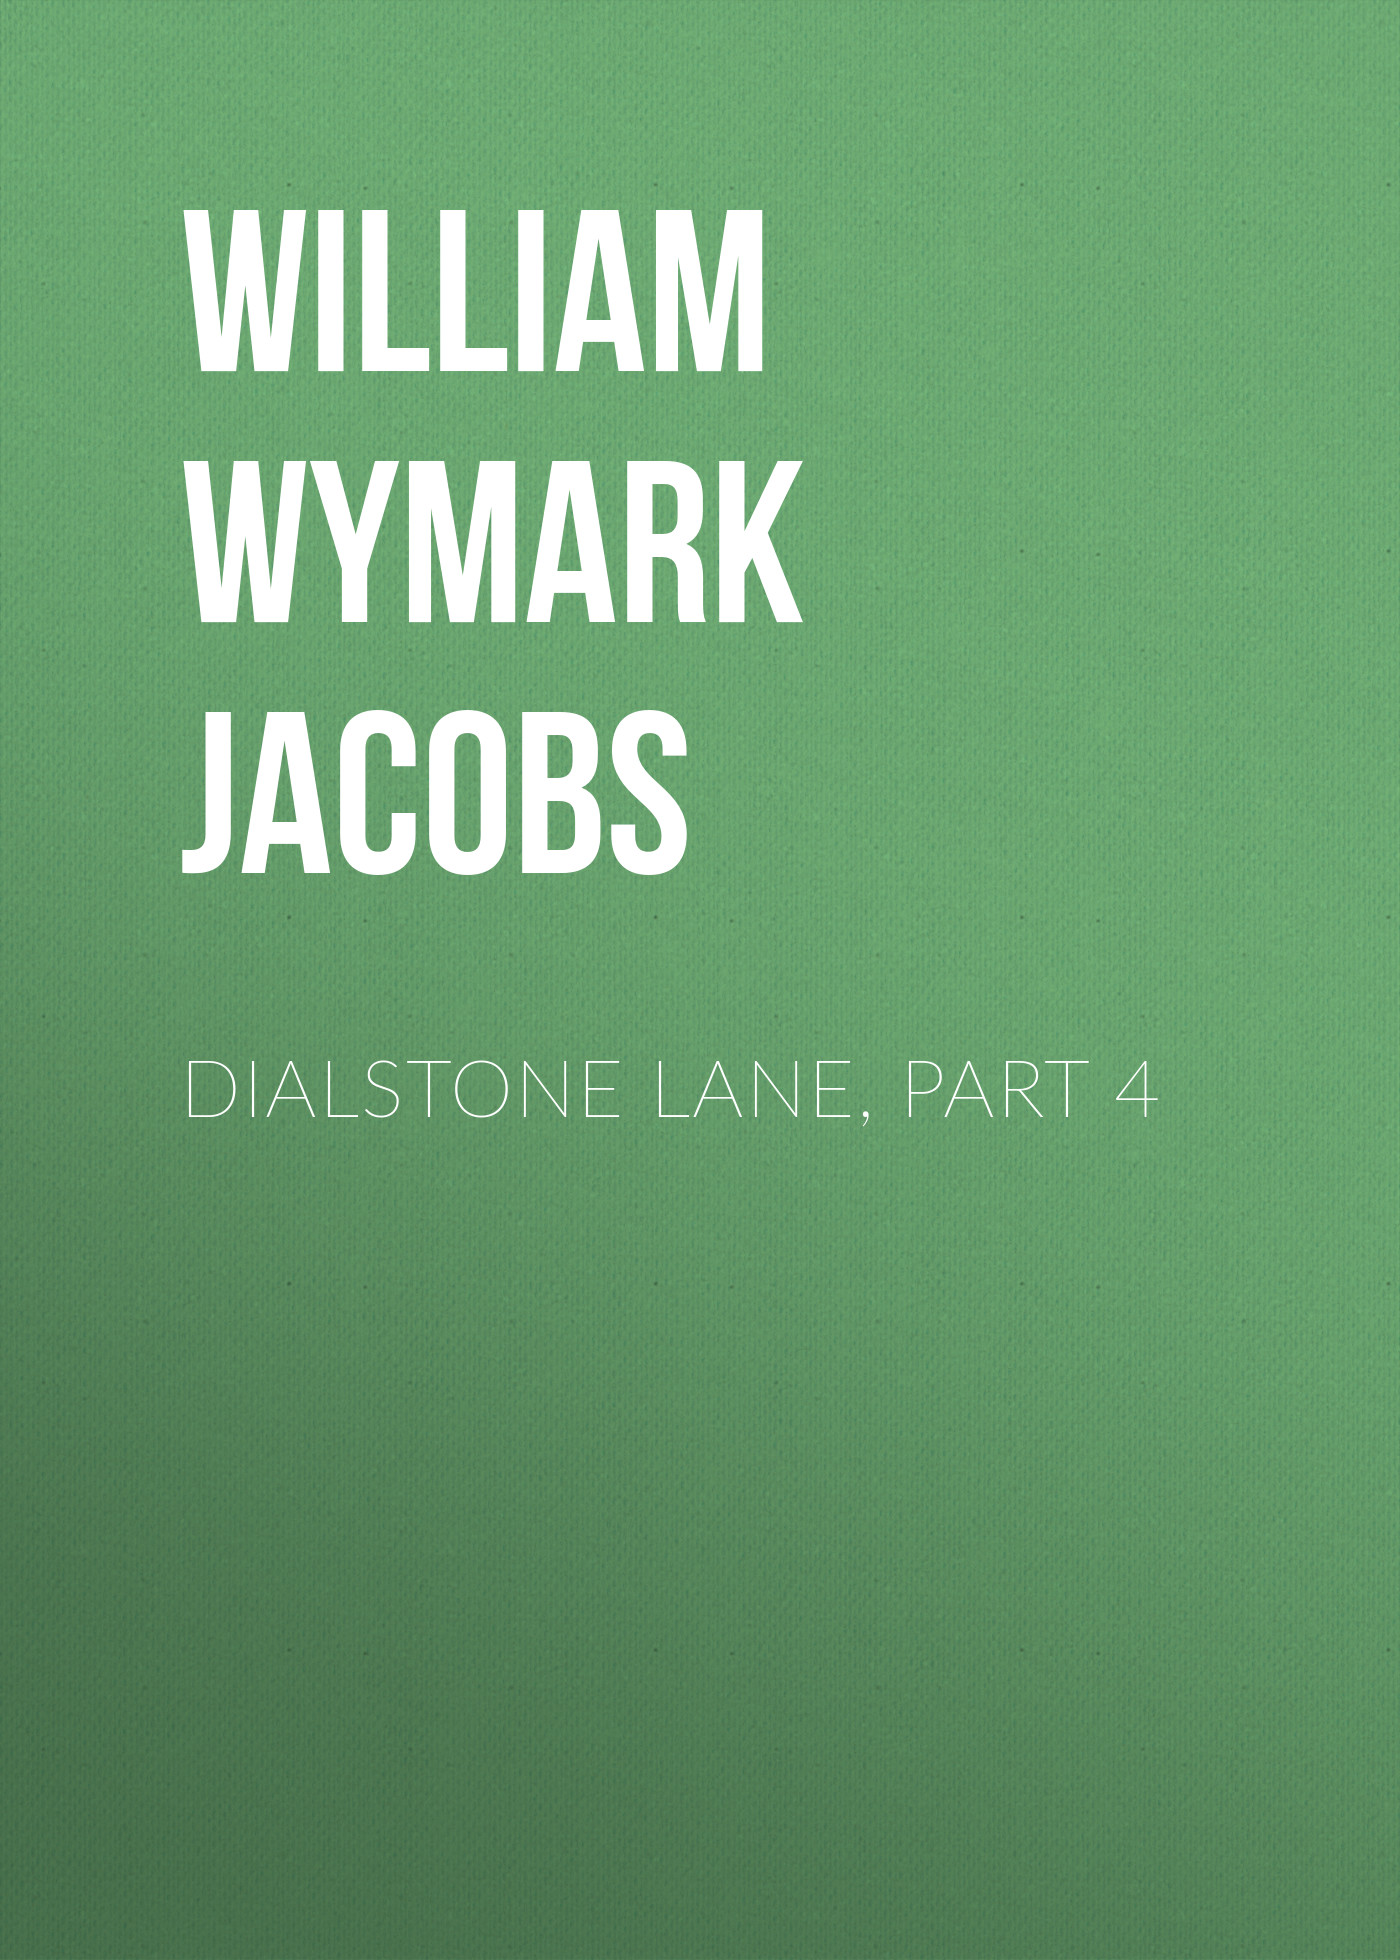 лучшая цена William Wymark Jacobs Dialstone Lane, Part 4